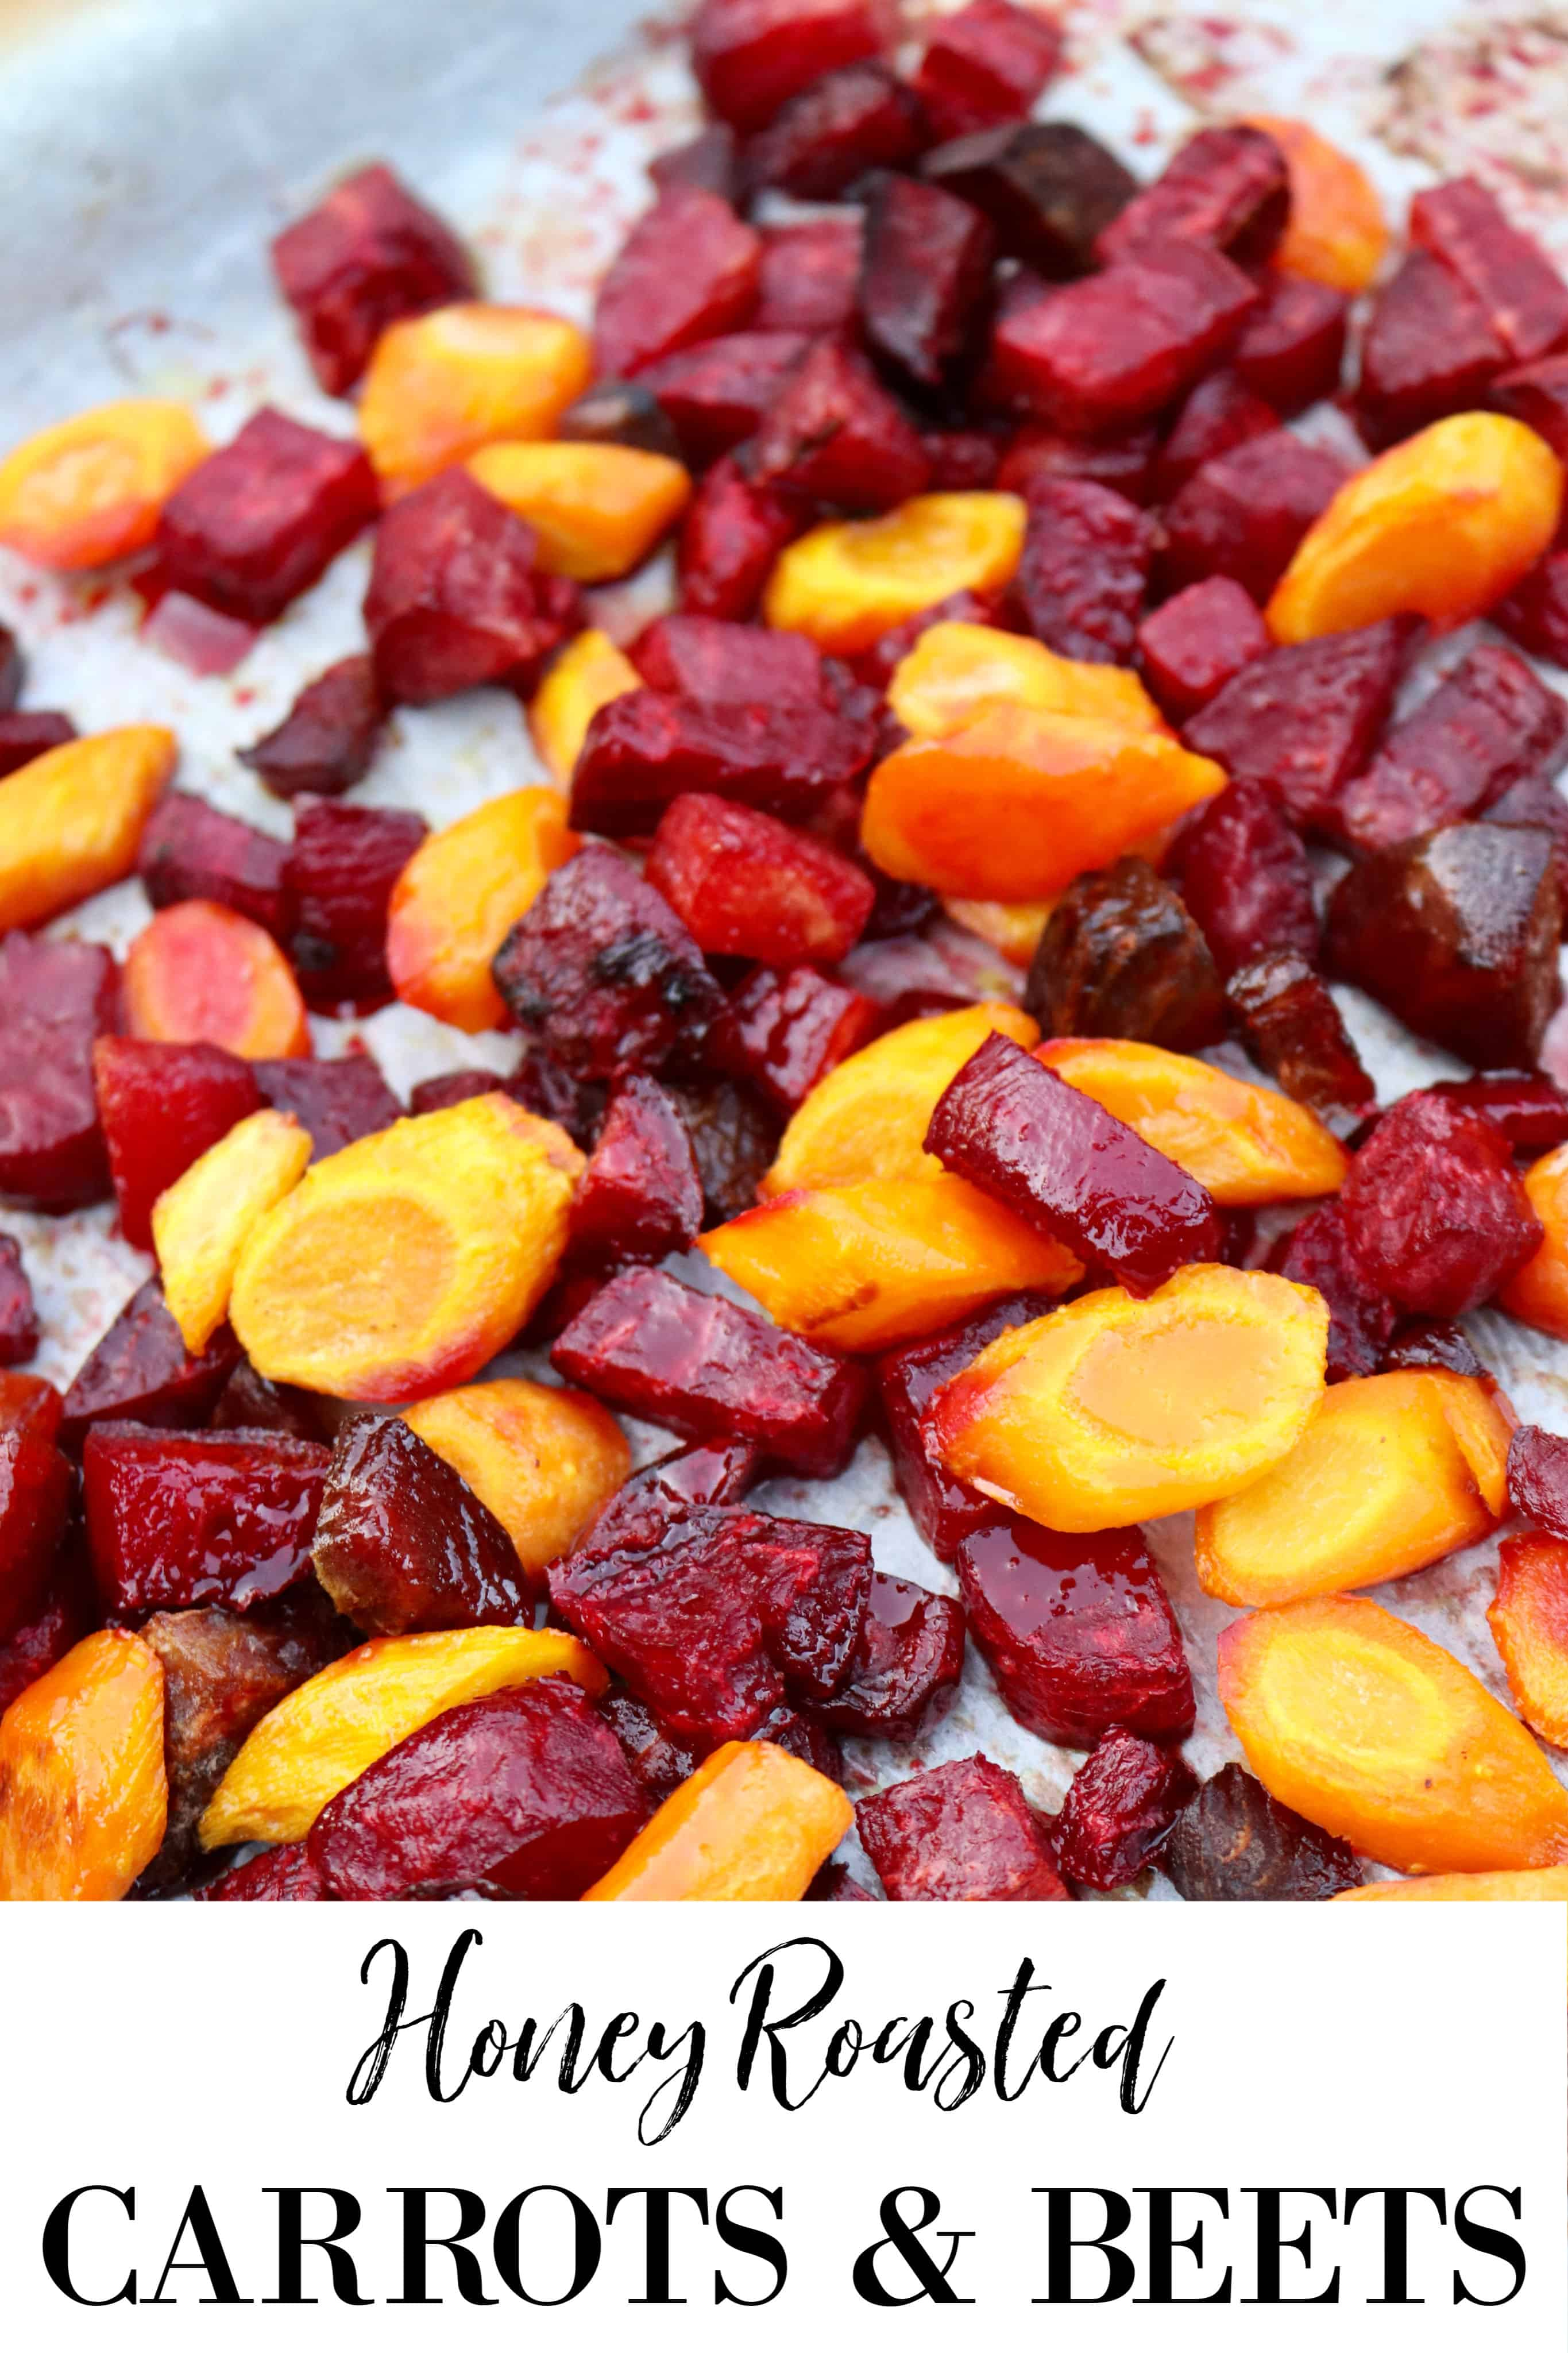 Honey Roasted Carrots And Beets Eat Well Spend Smart